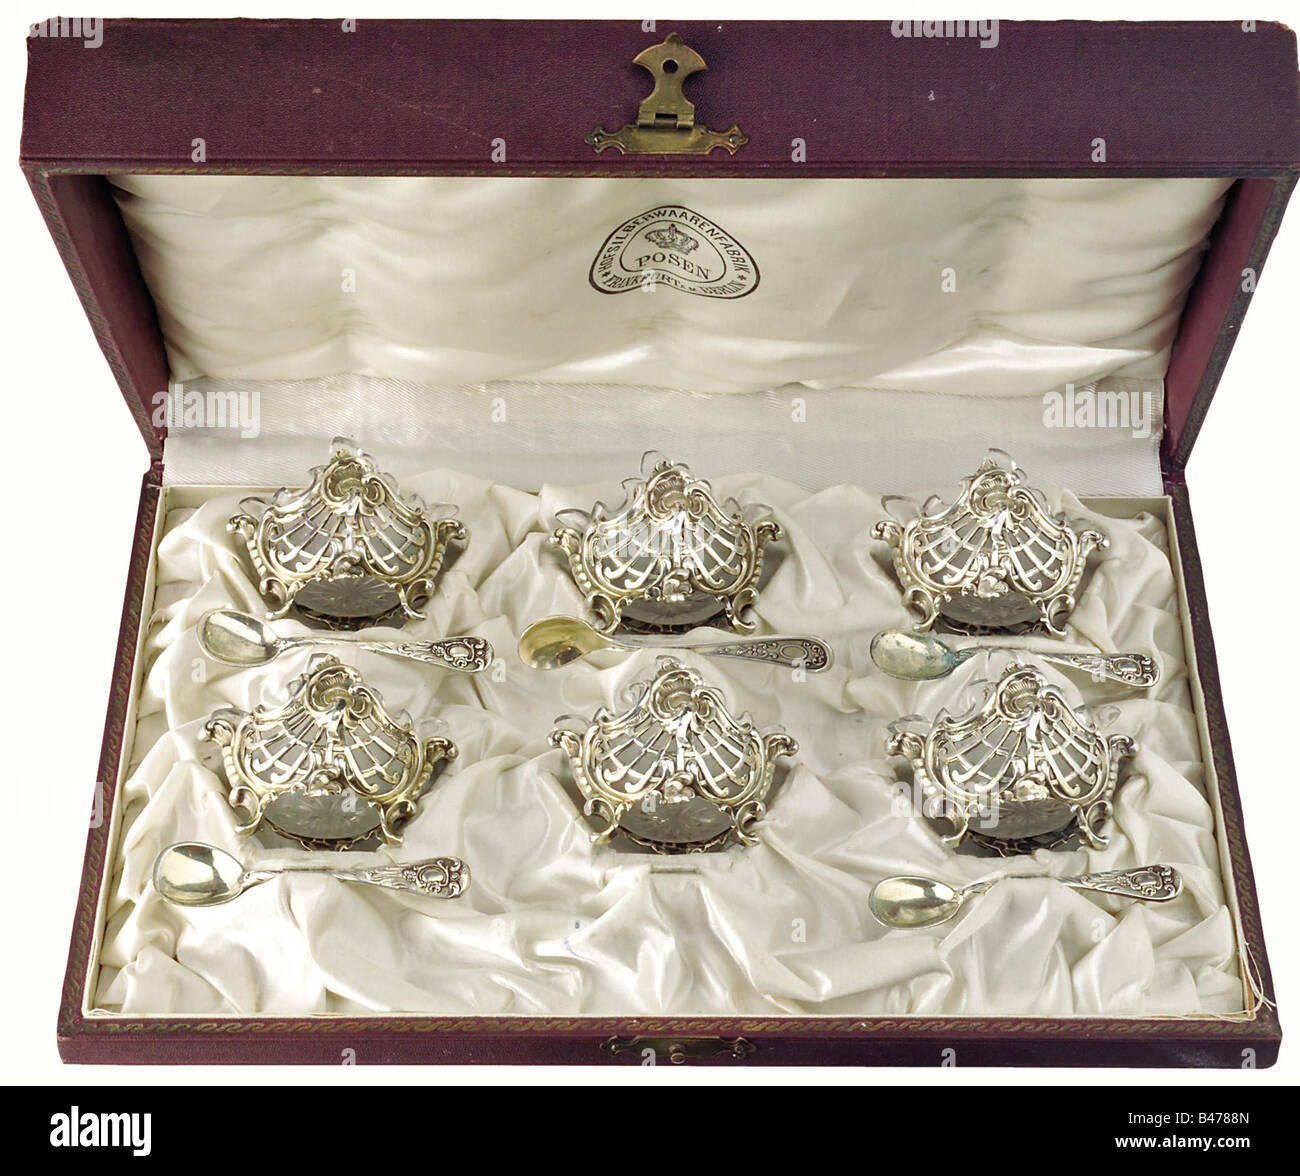 Empress Auguste Victoria - six small silver salt dishes in a chest., Openworked silver dishes in the Rococo style. Stock Photo